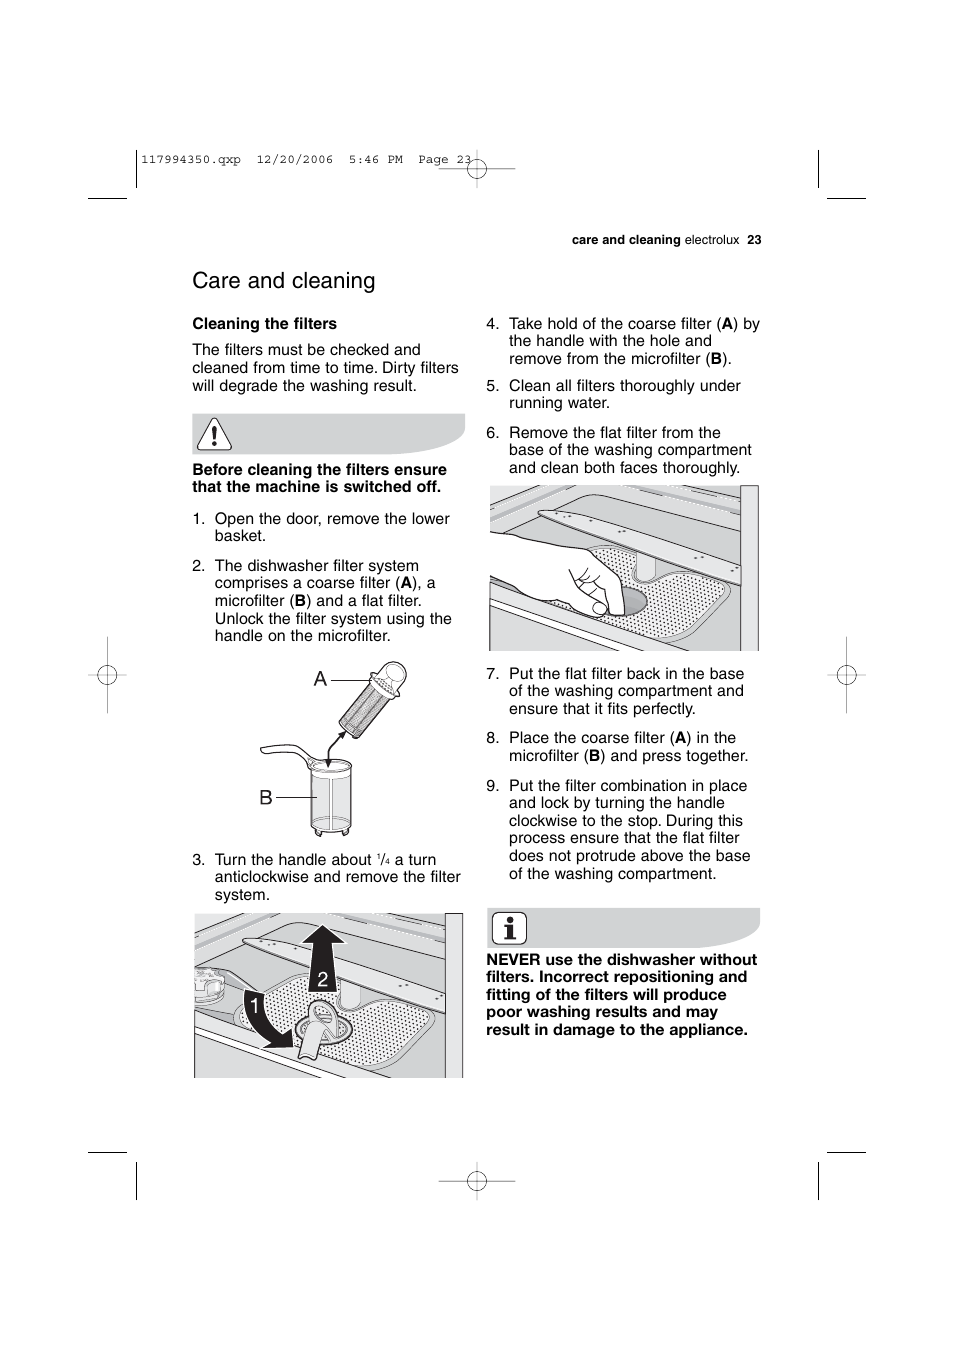 care and cleaning electrolux dishlex dx303 user manual page 23 rh manualsdir com aeg electrolux dishwasher service manual electrolux dishwasher owners manual